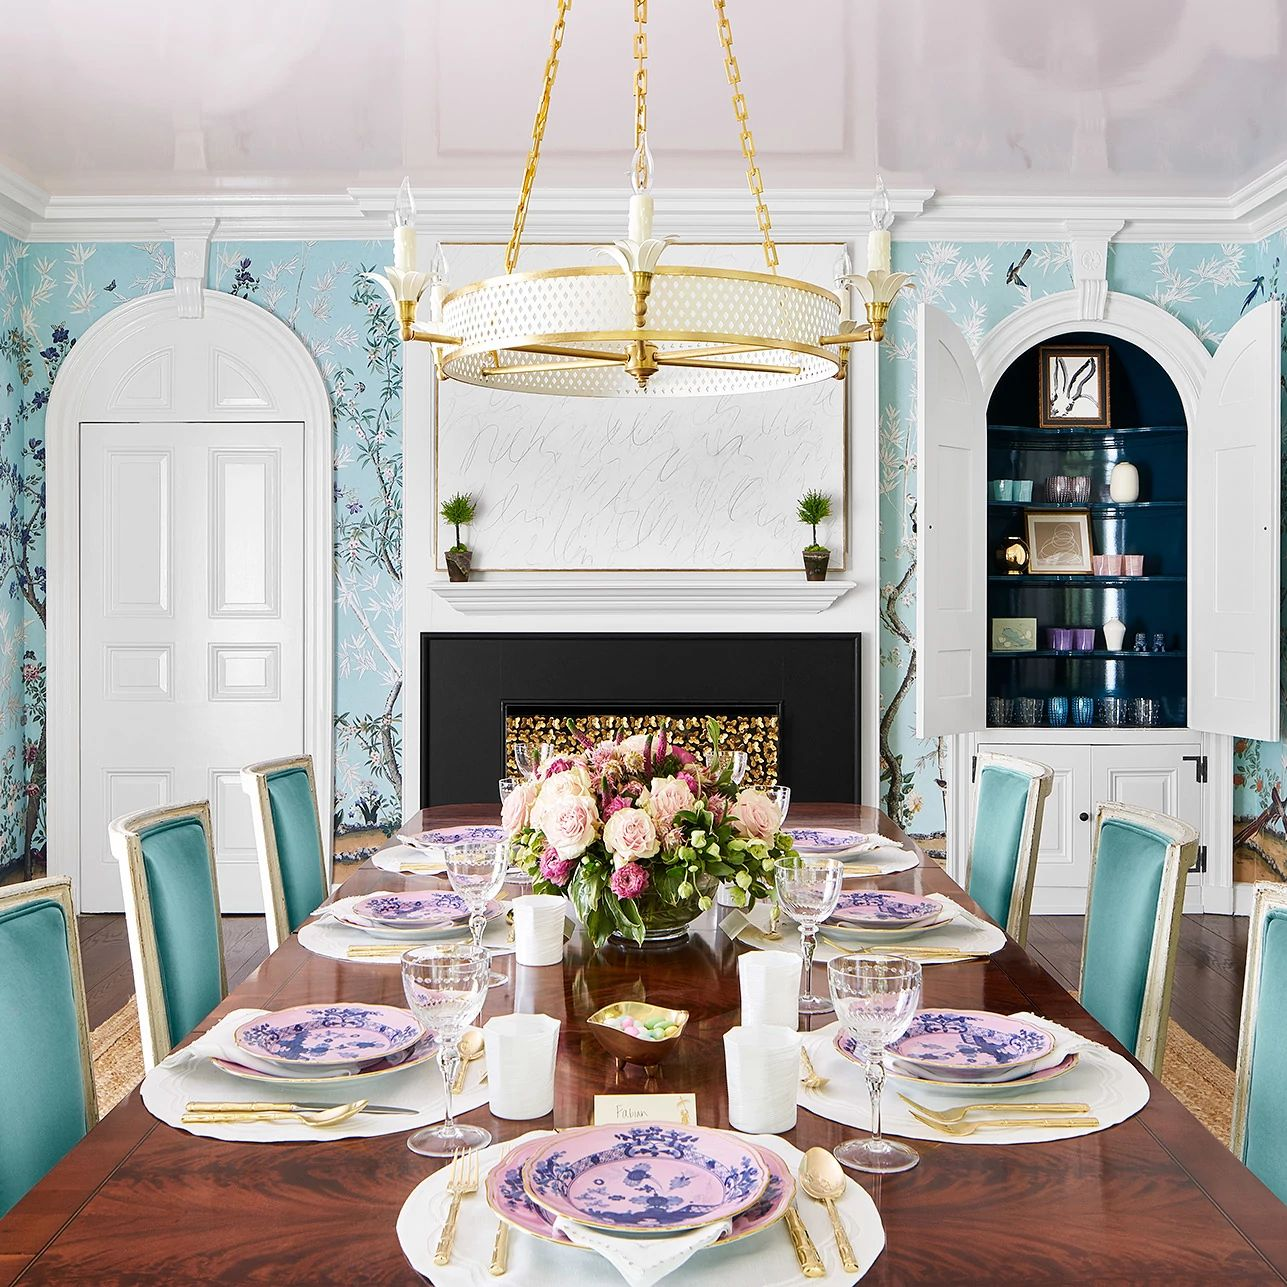 A dining room table  Description automatically generated